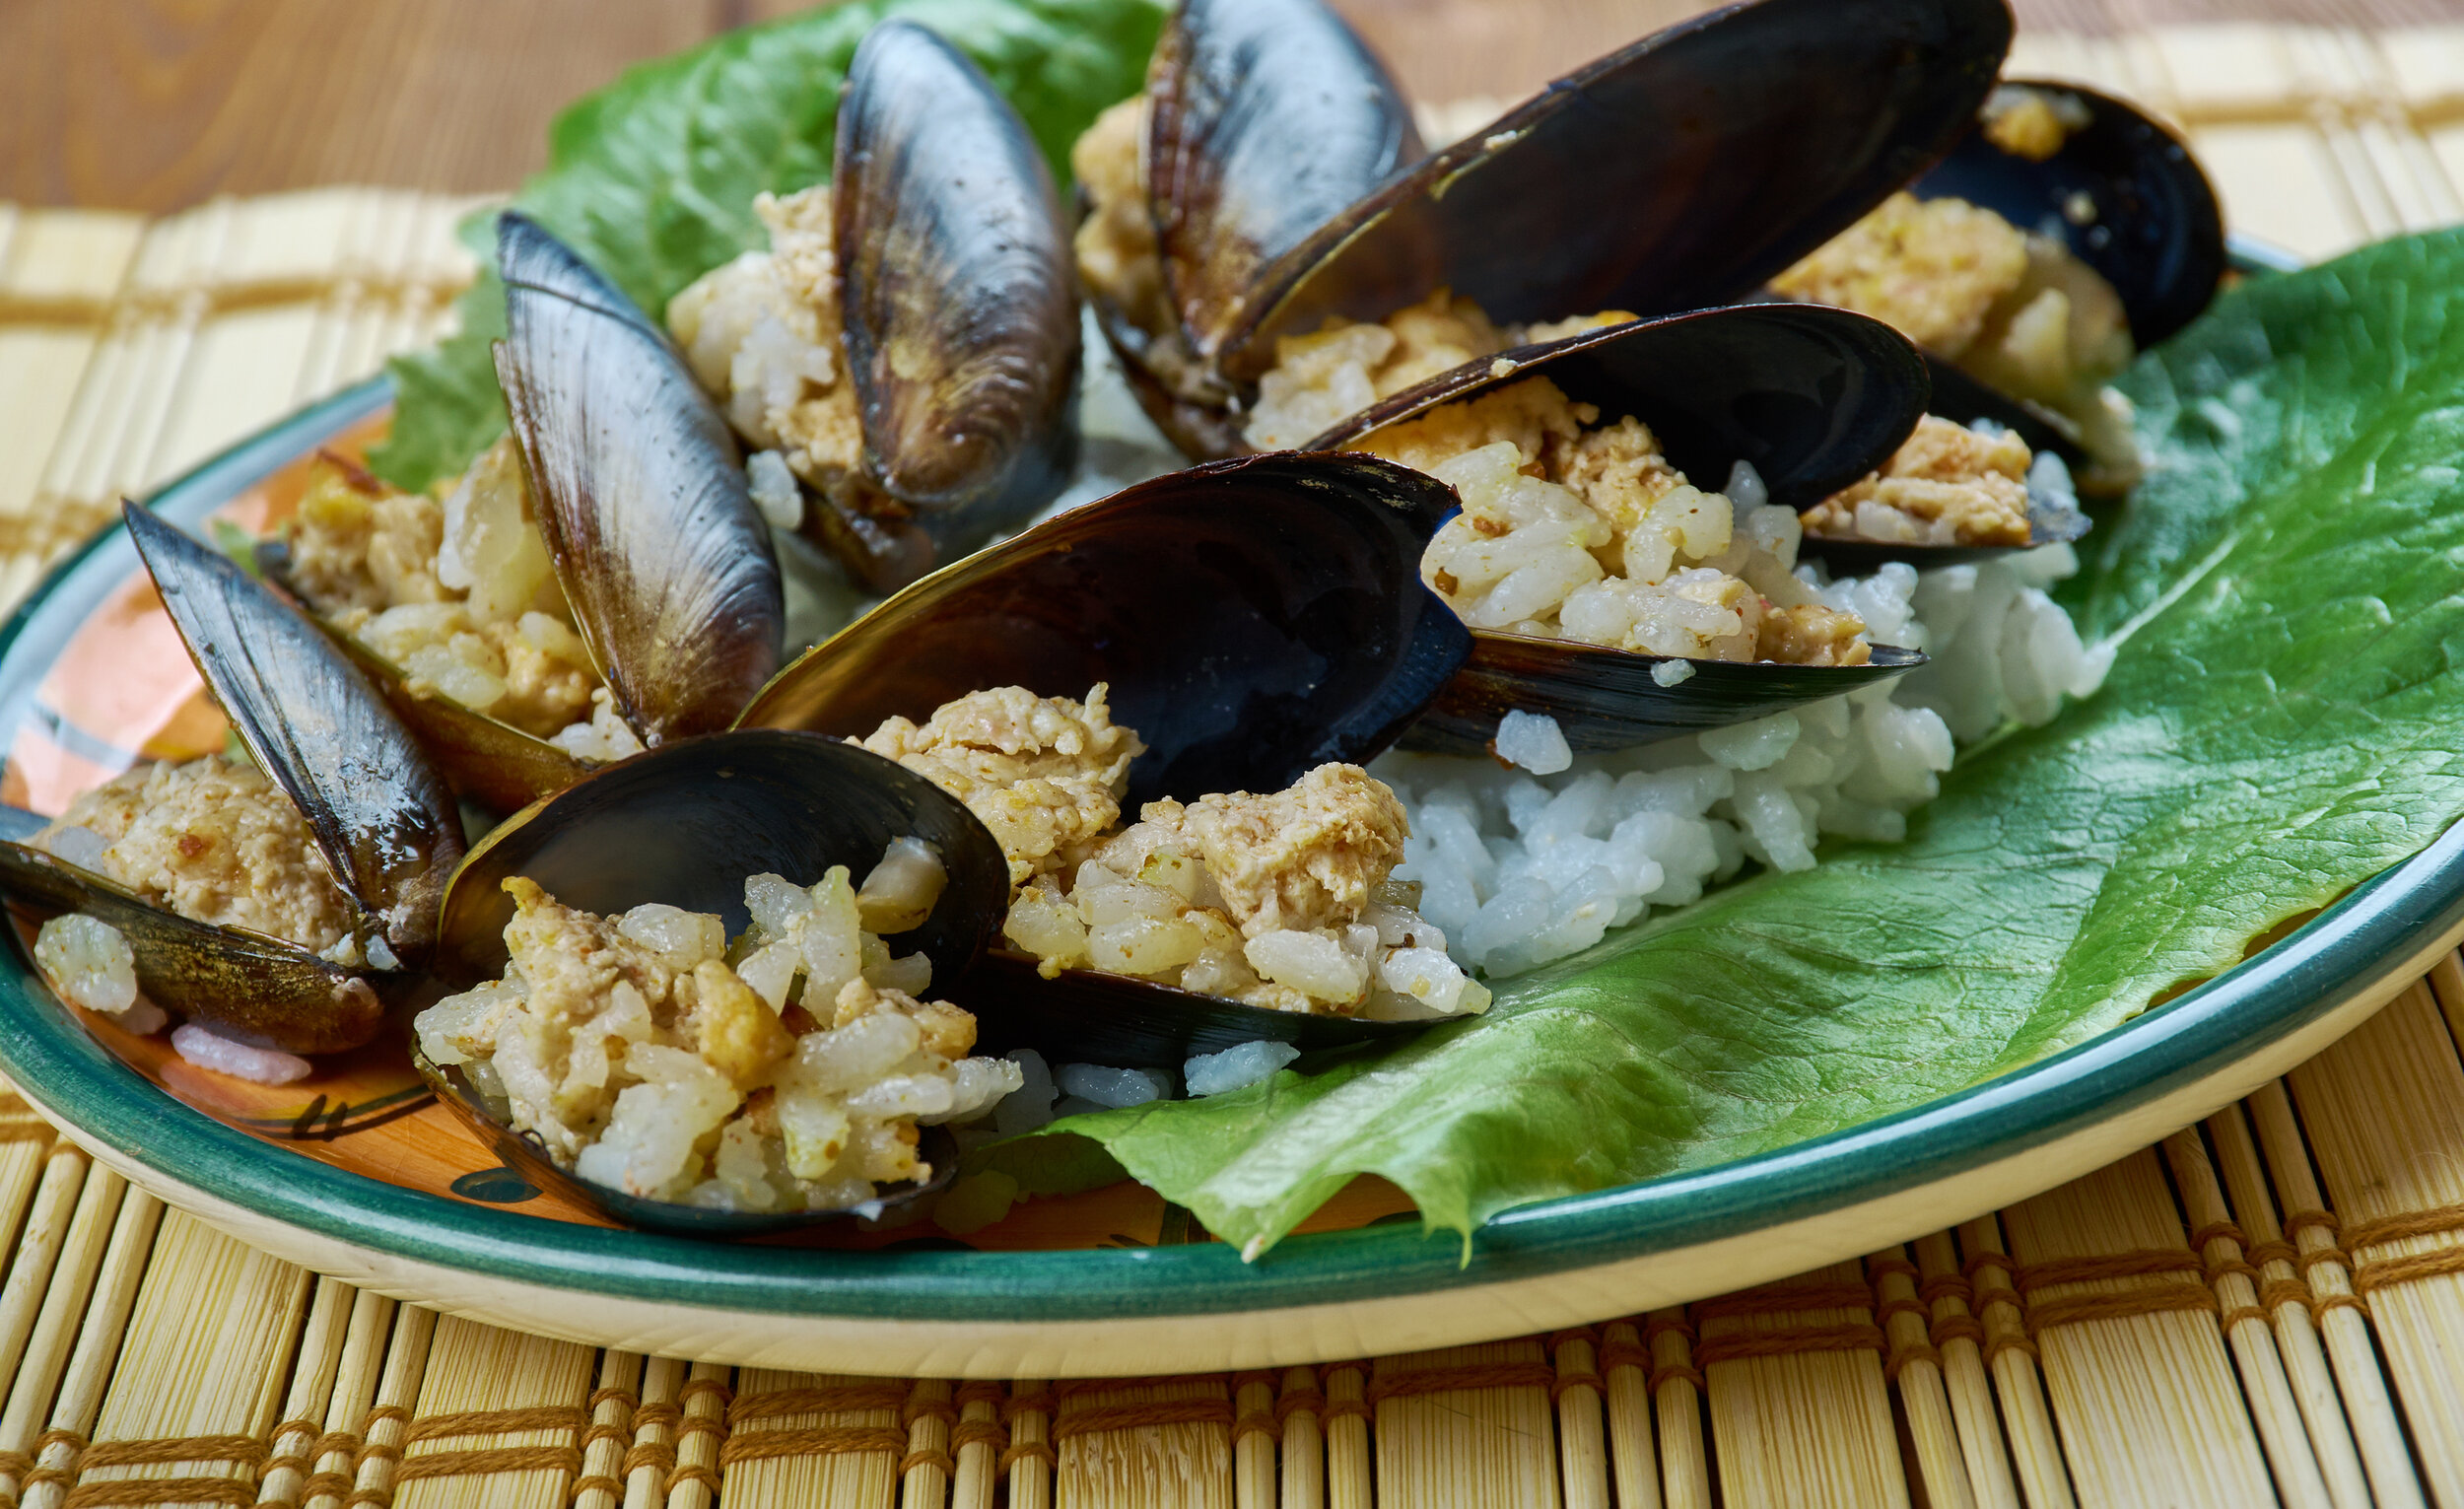 Turkish snack of mussels is Istanbul street food.